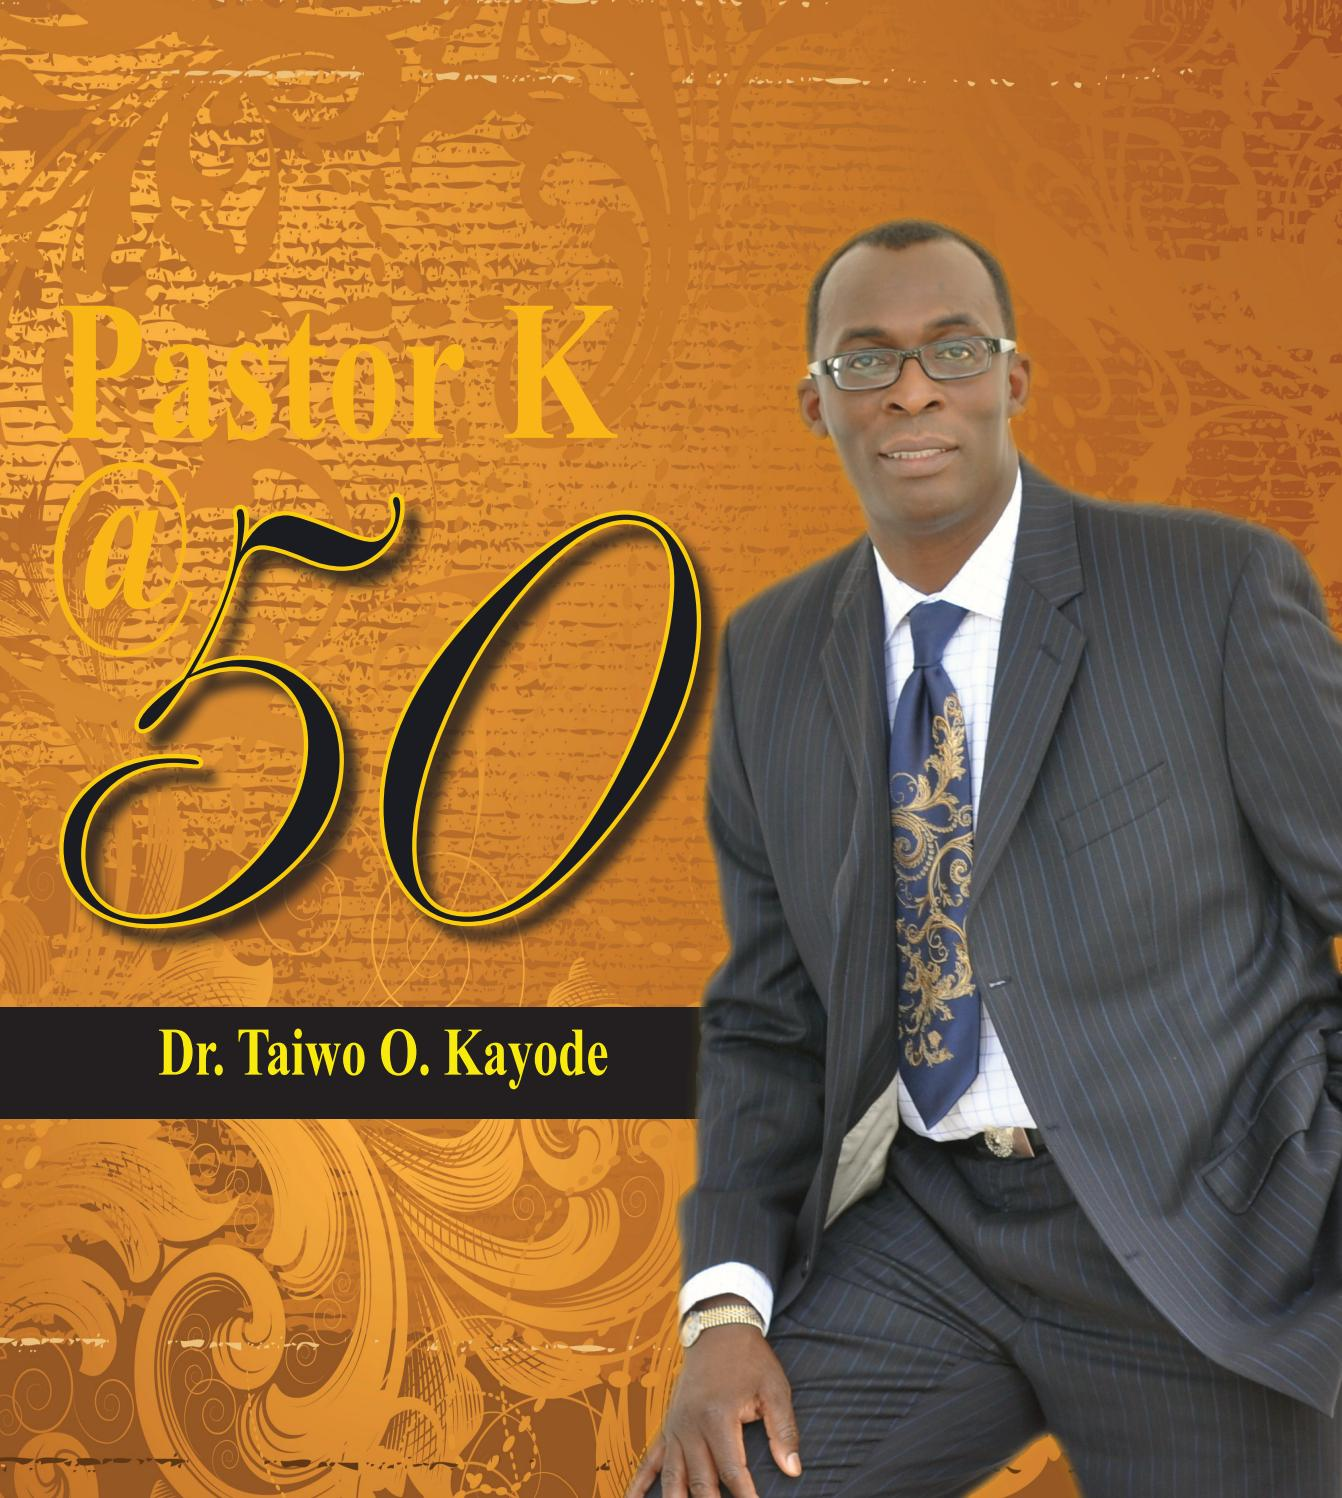 Pastor K 50th Birthday Program By Dexpressionz Issuu